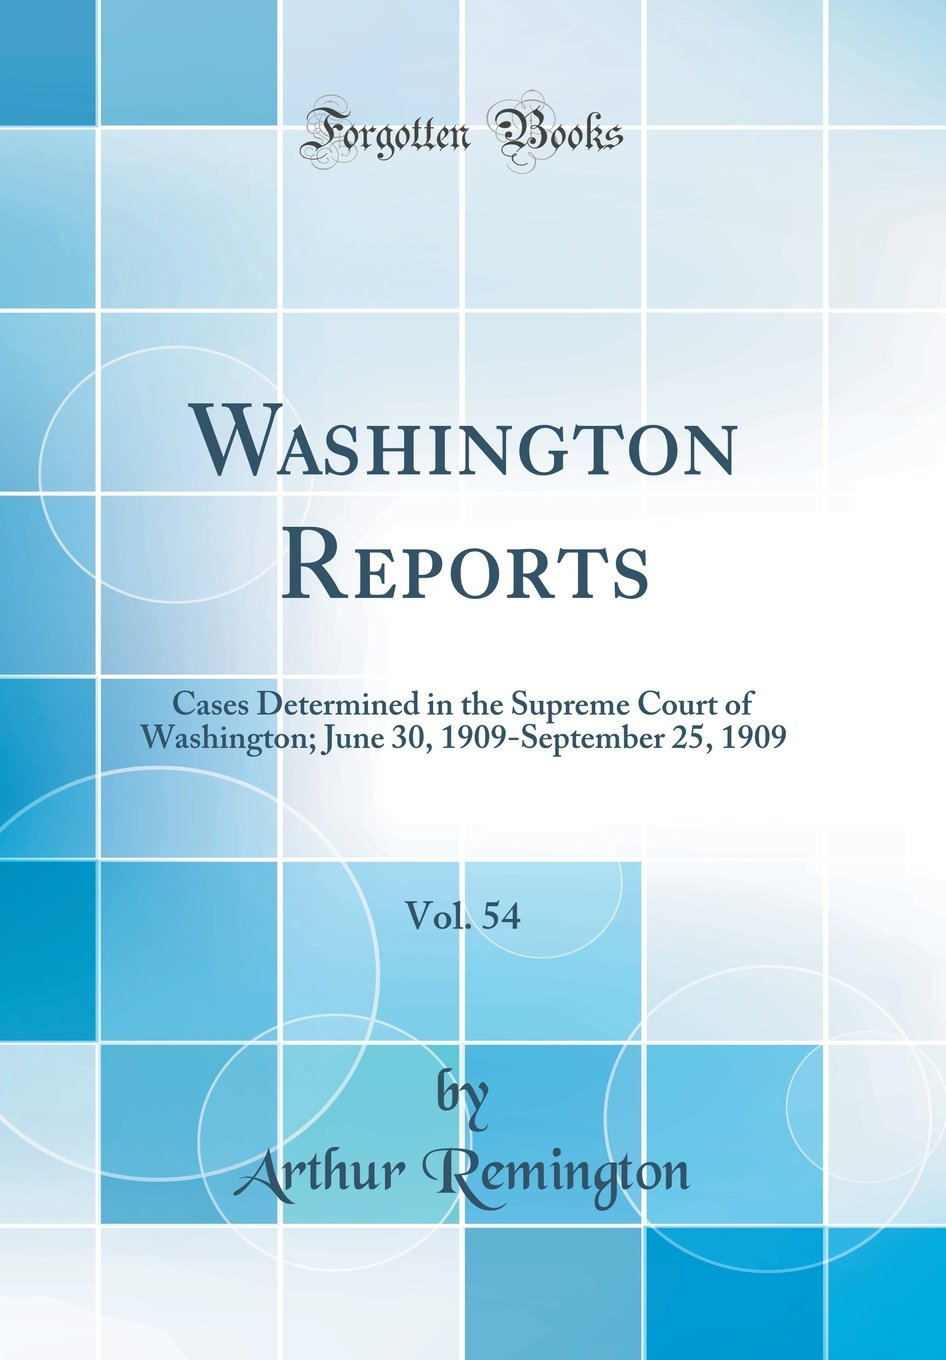 Washington Reports, Vol. 54: Cases Determined in the Supreme Court of Washington; June 30, 1909-September 25, 1909 (Classic Reprint) PDF